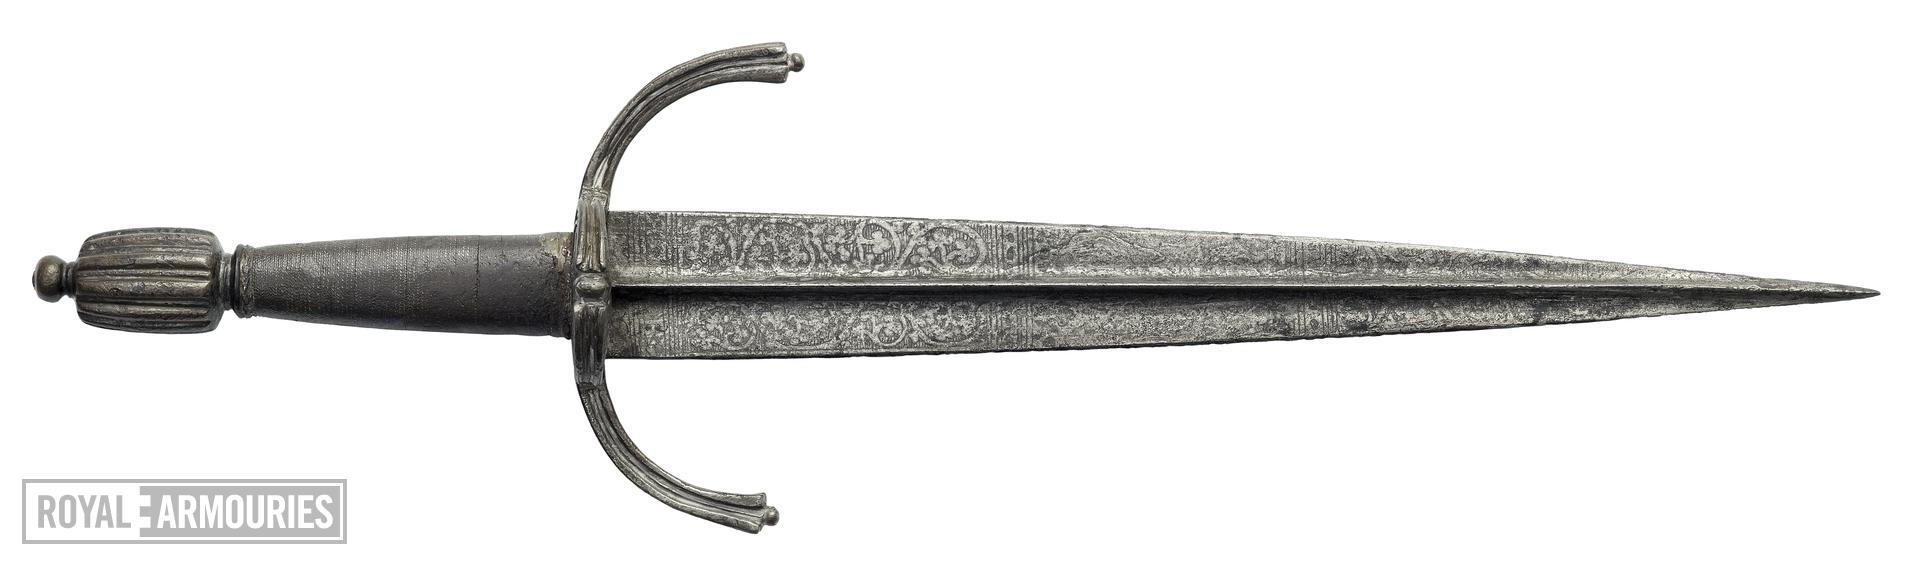 Dagger - Left Hand Dagger With etched, floral blade